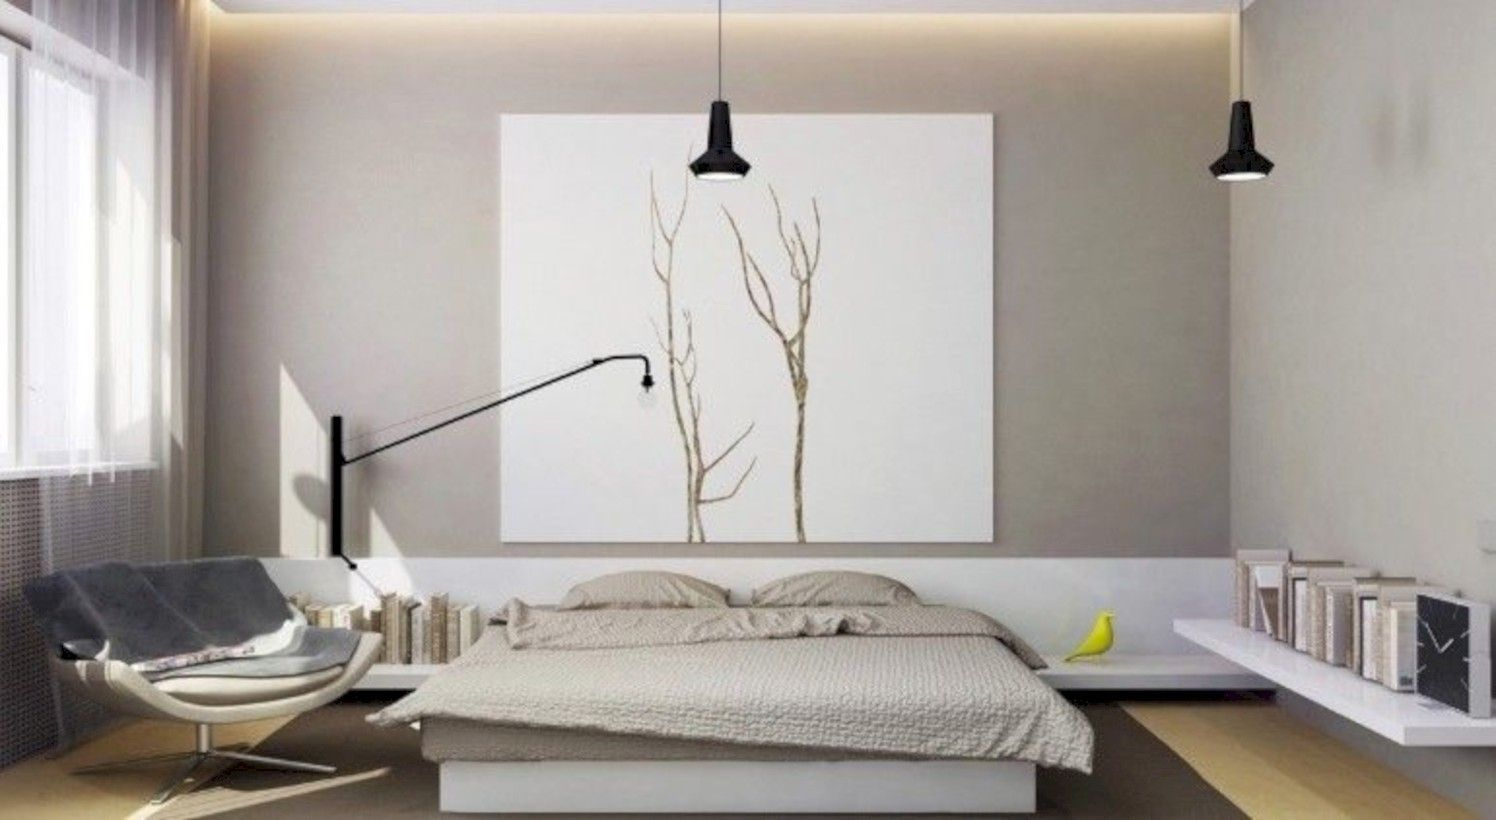 Minimalist master bedroom decoration ideas 43 | Minimal ...